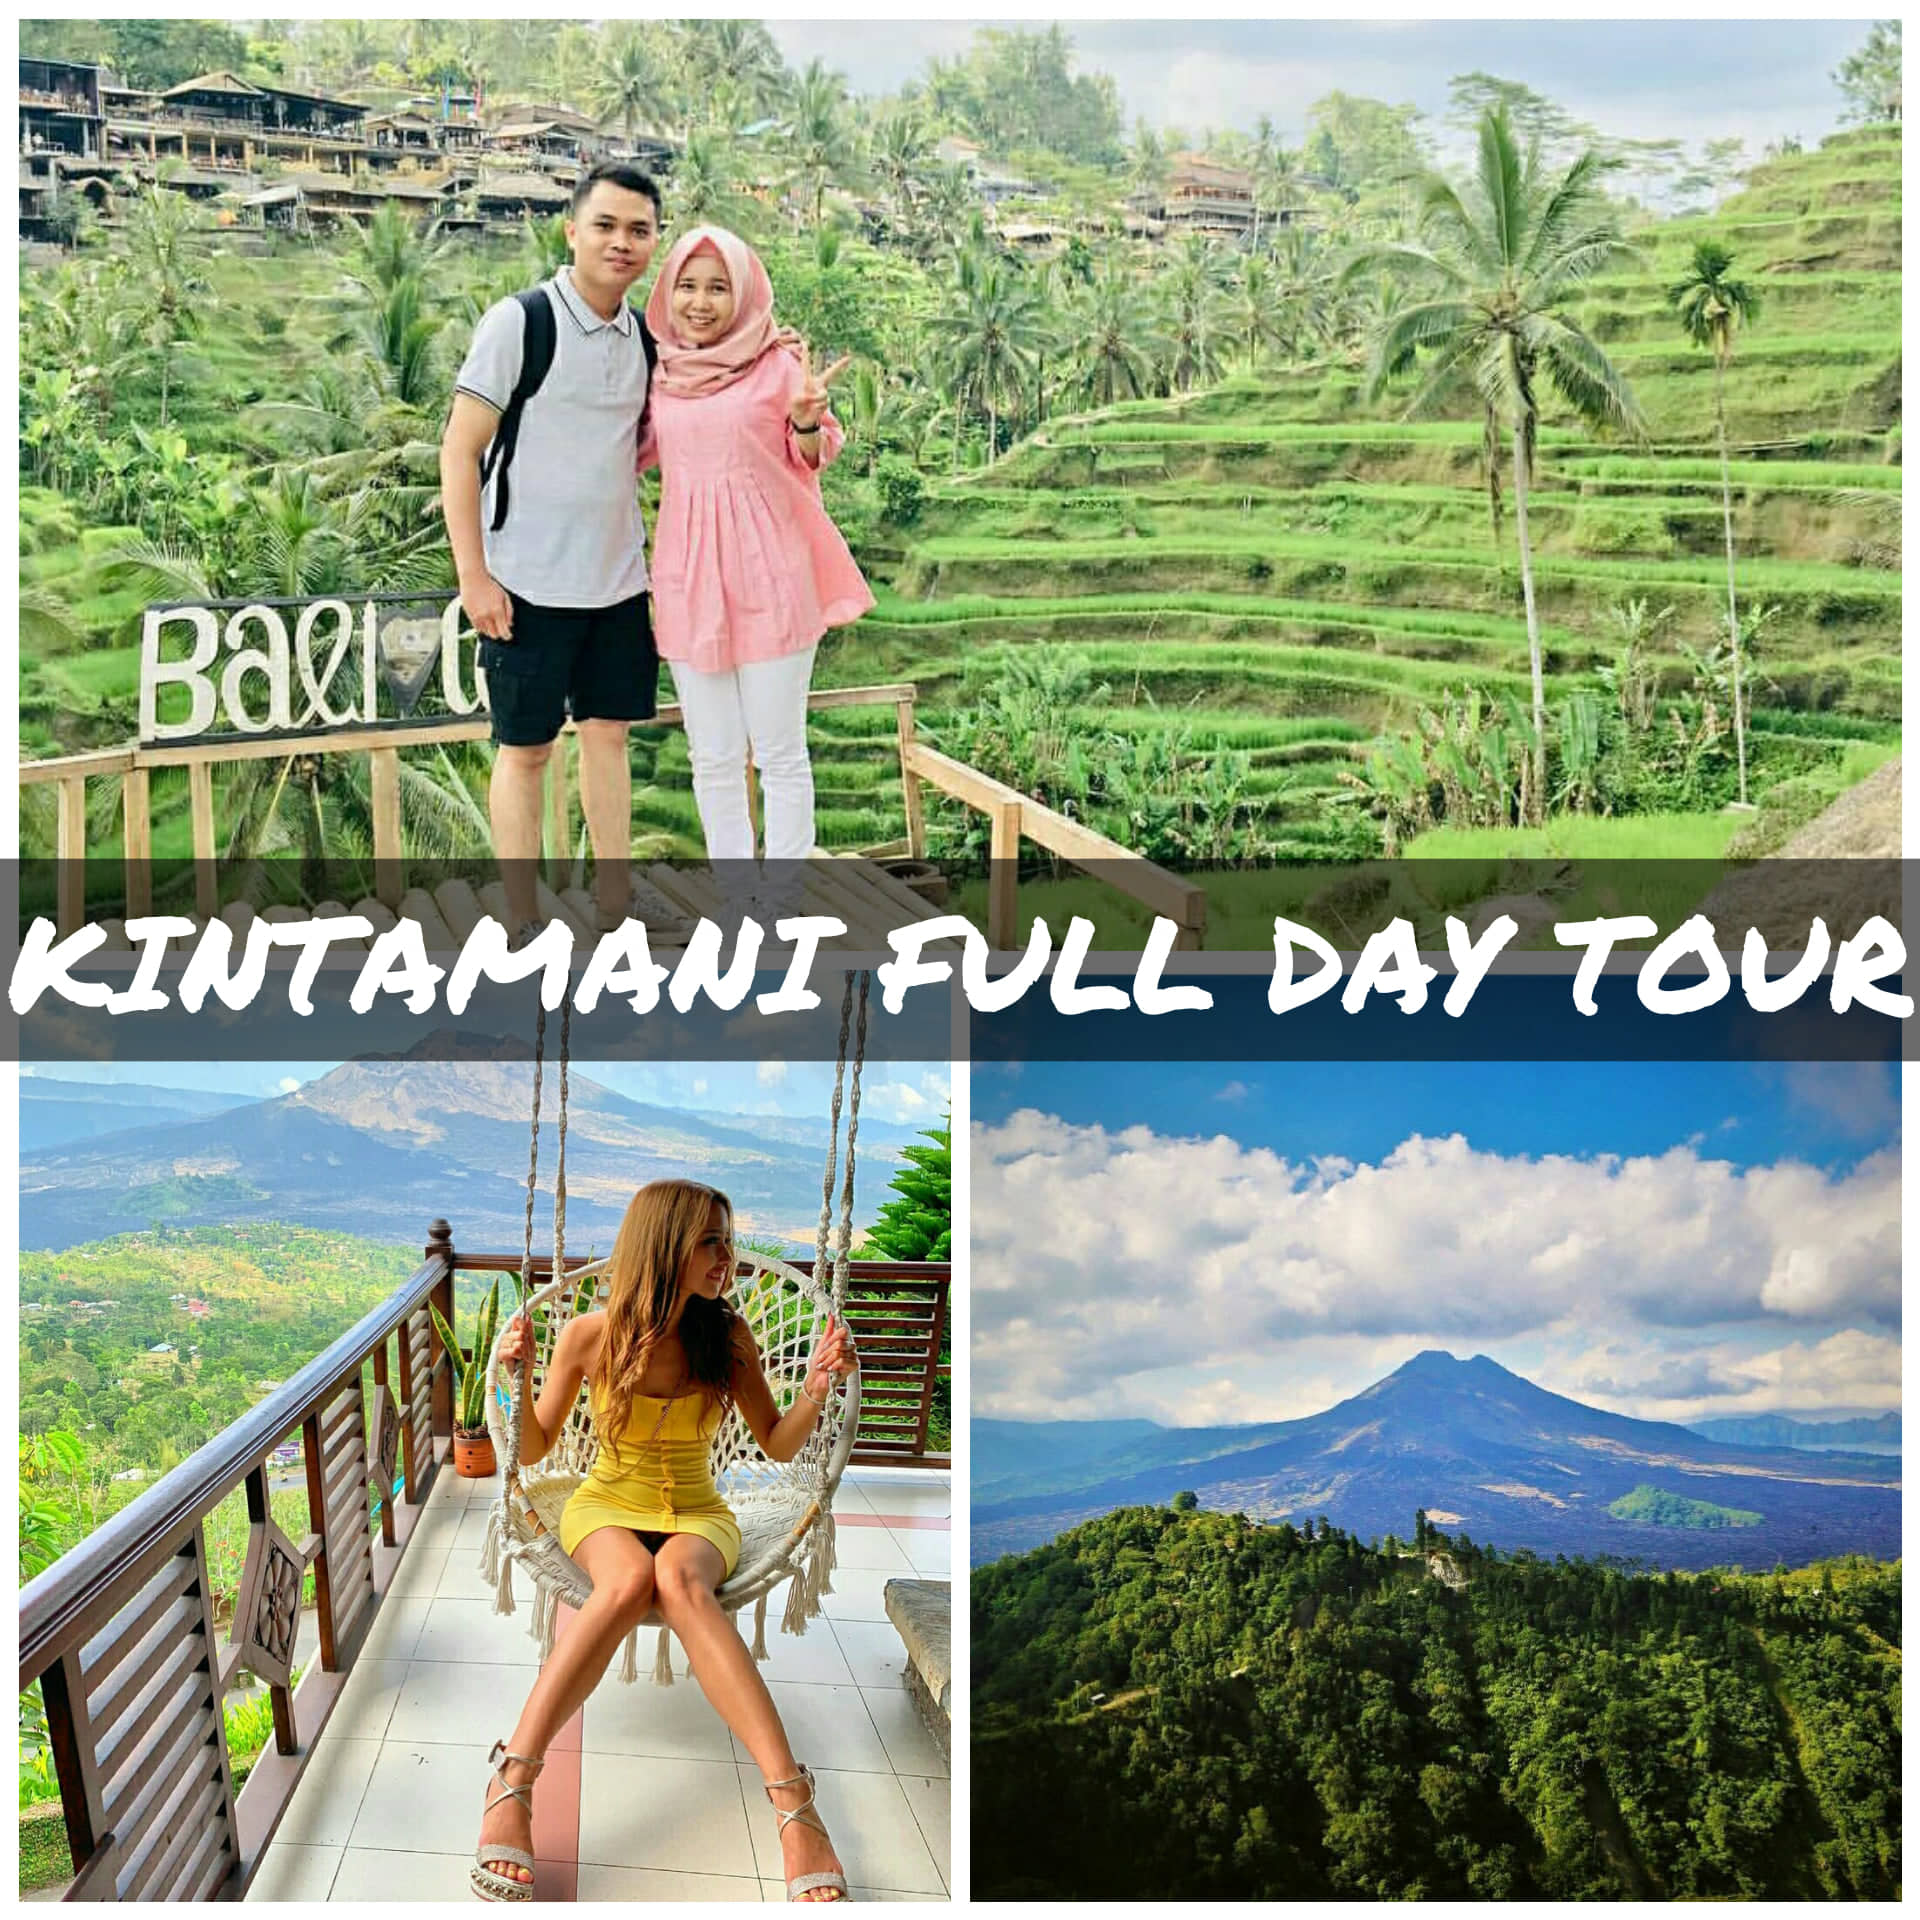 Kintamani Full Day Tour